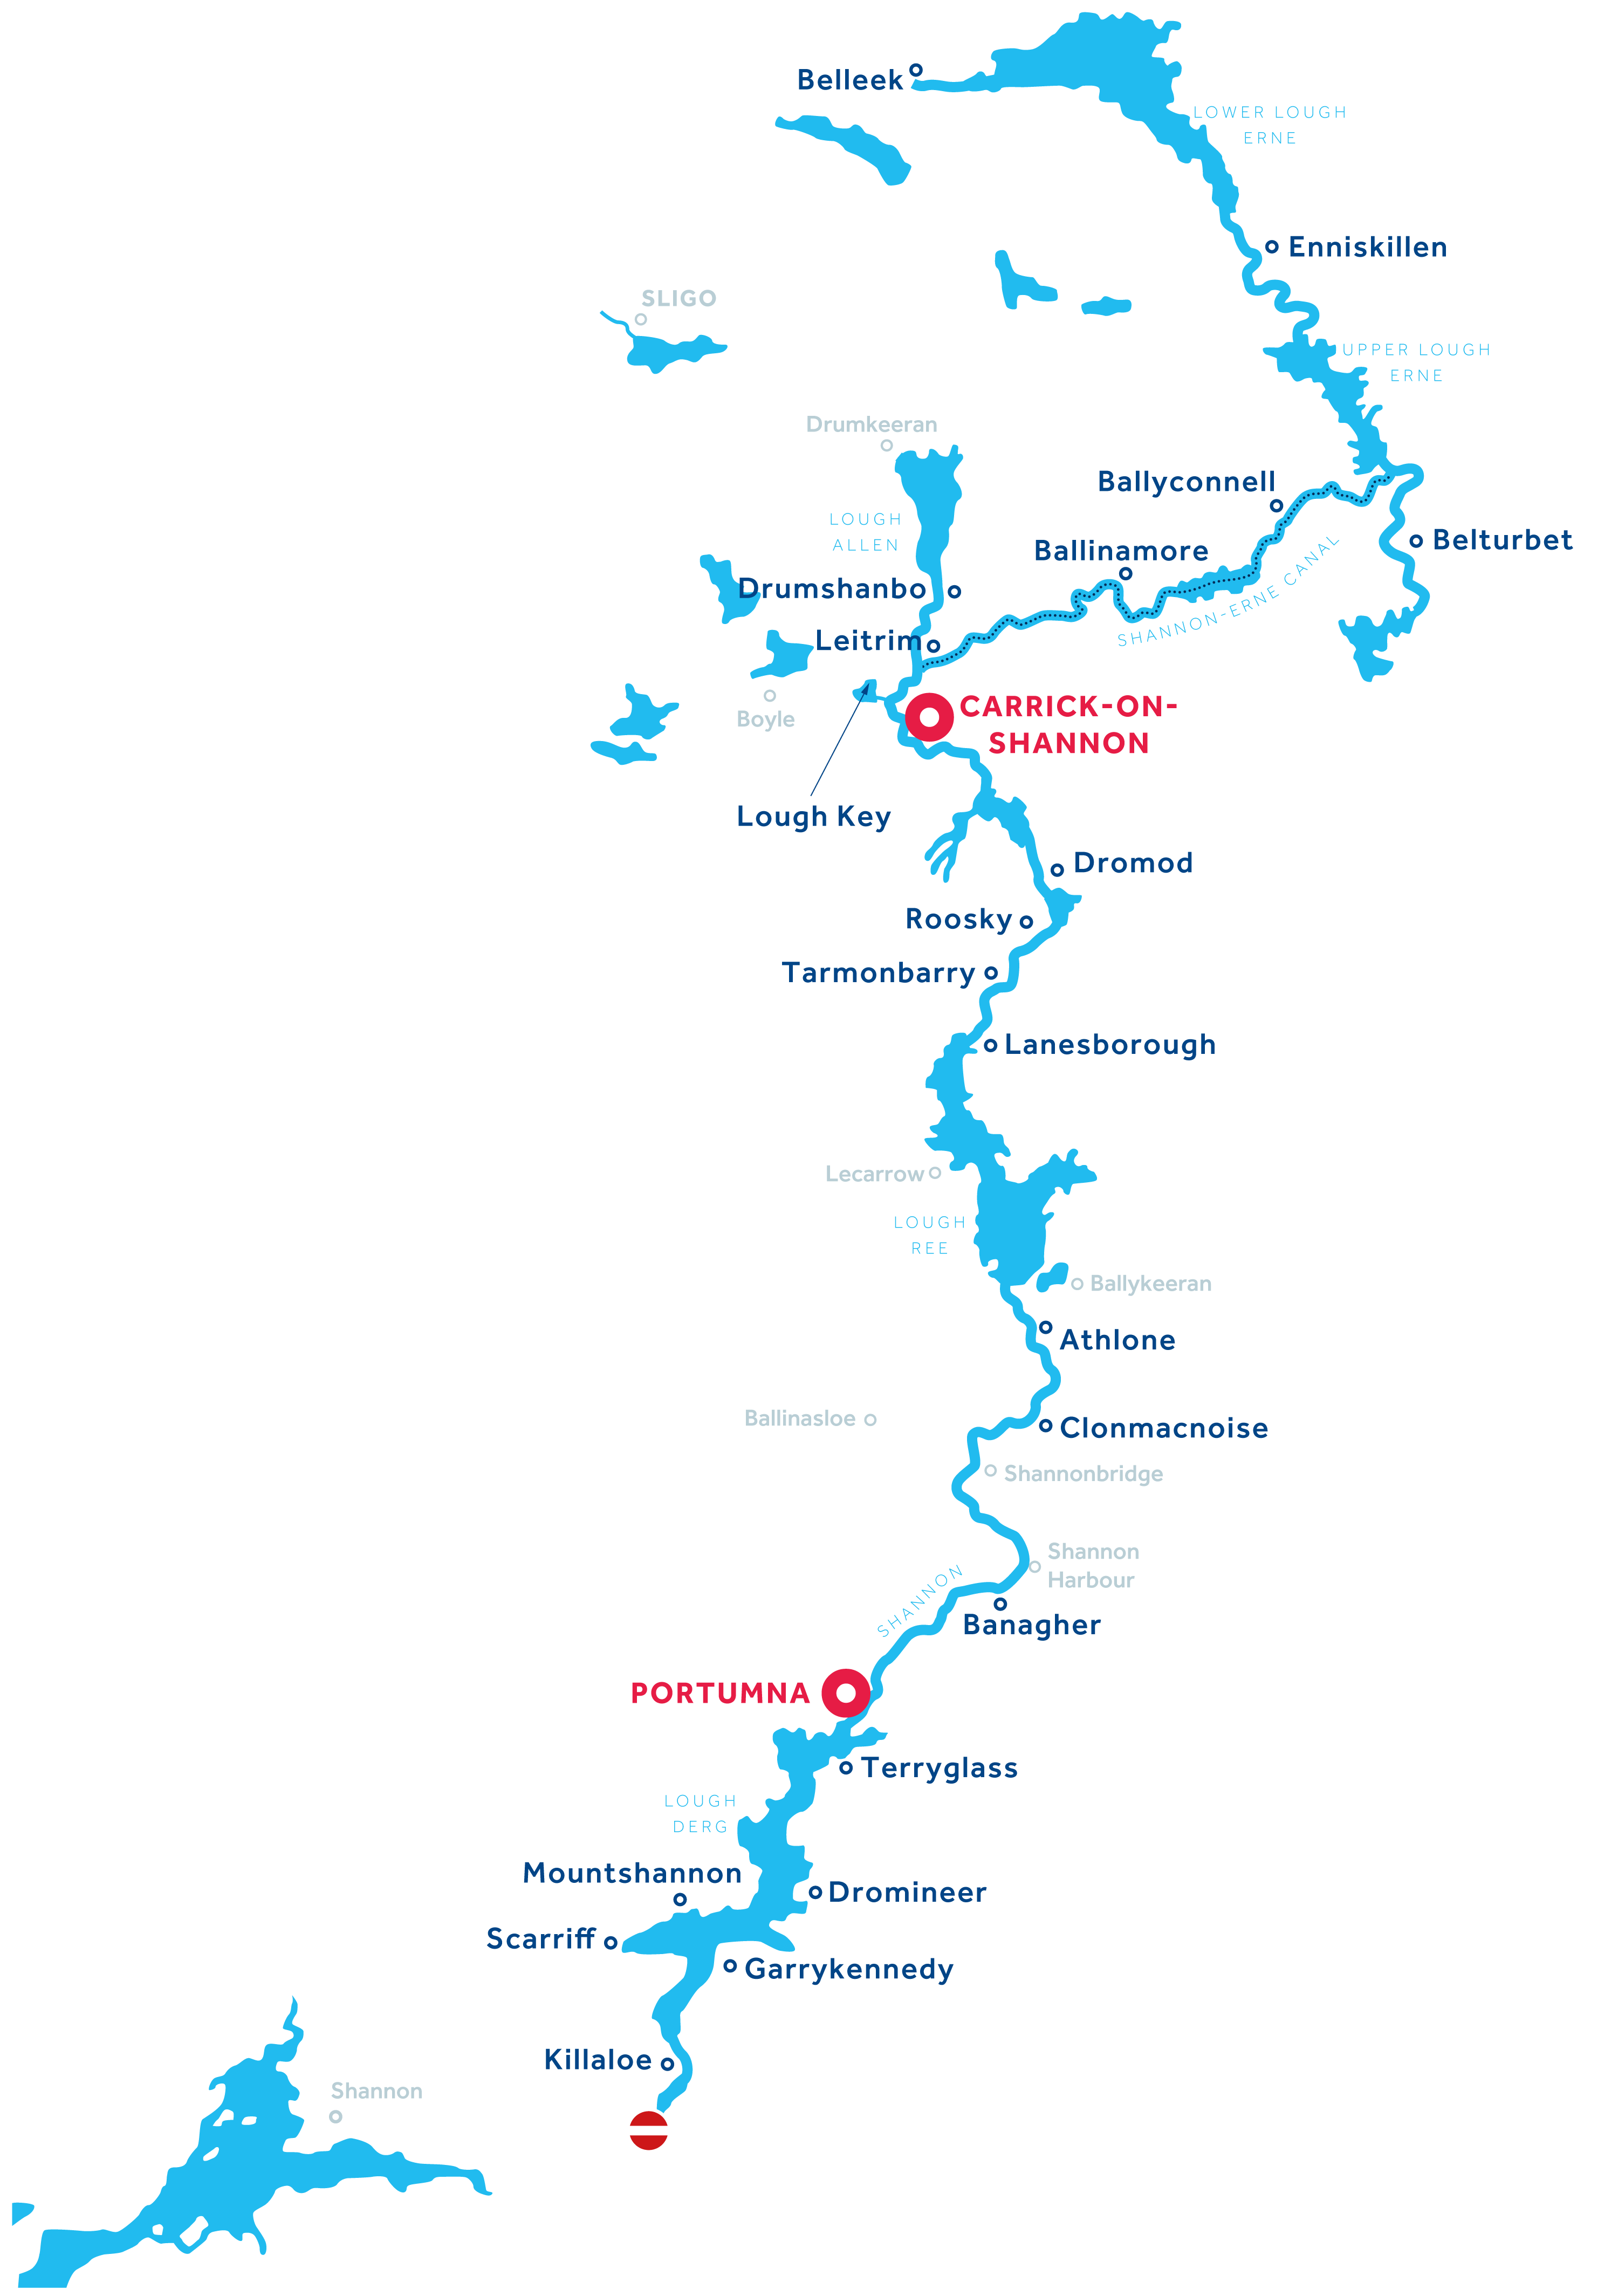 Shannon and Erne Region map